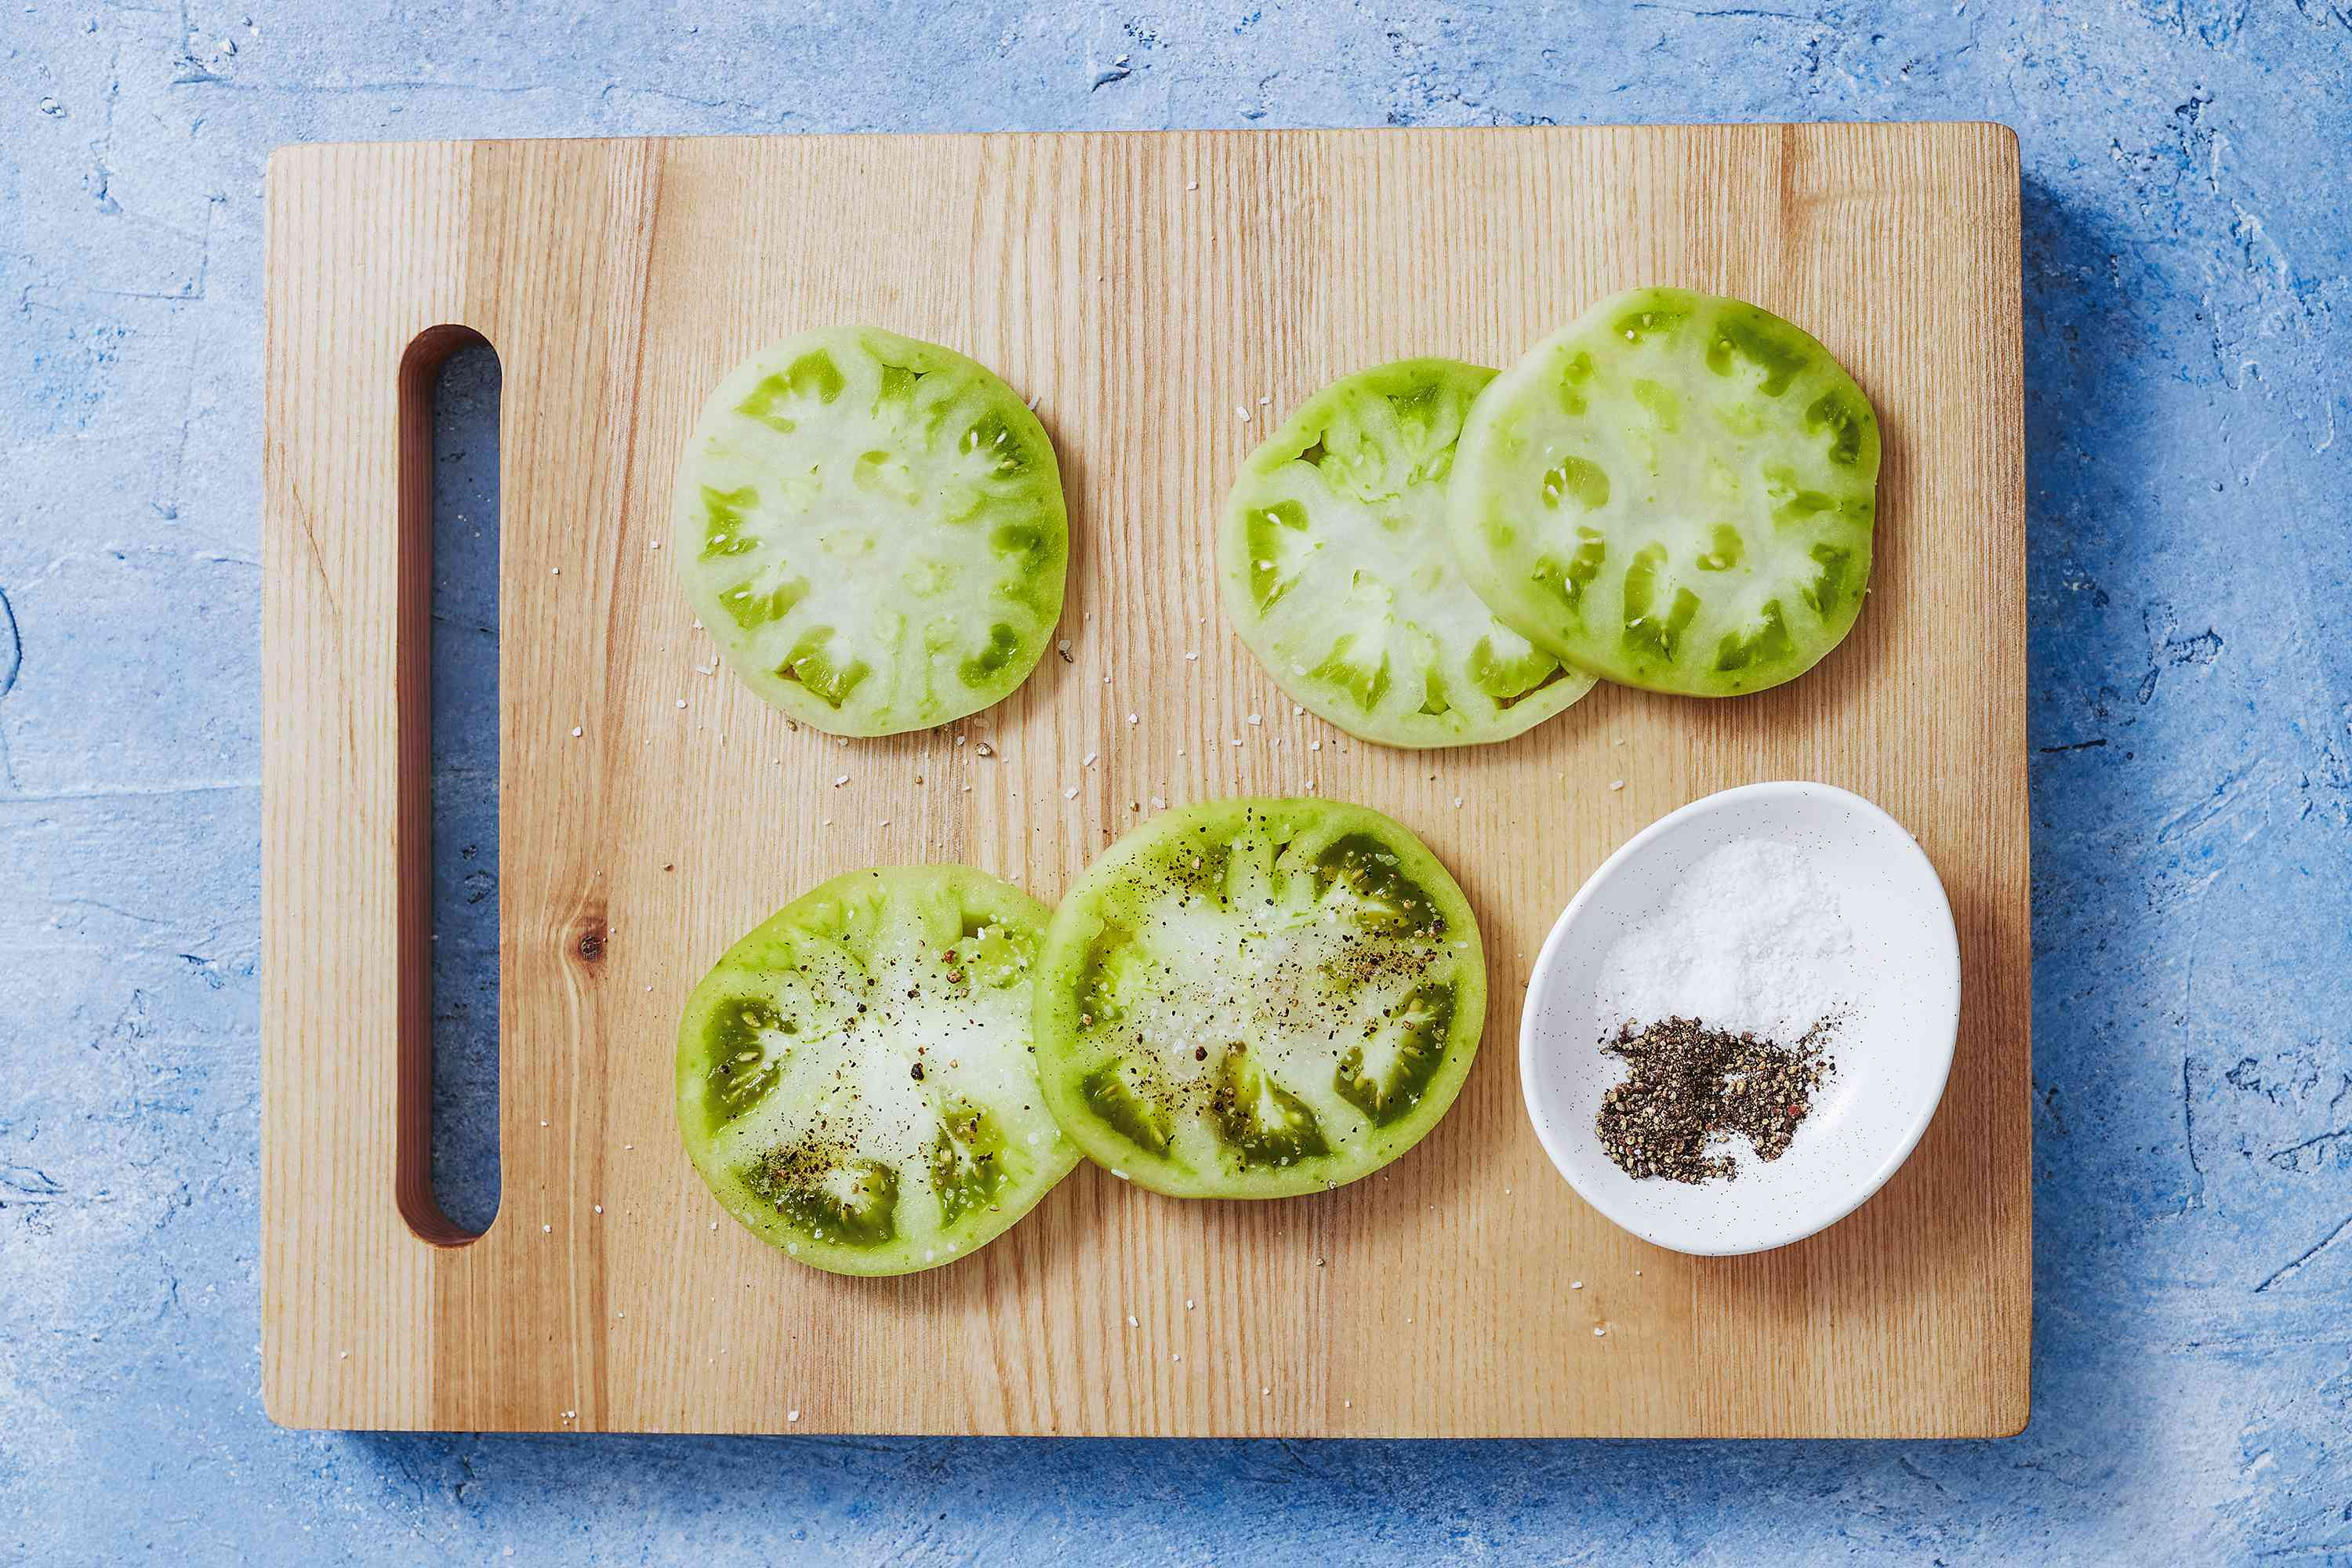 A cutting board with slices of green tomatoes with salt and pepper